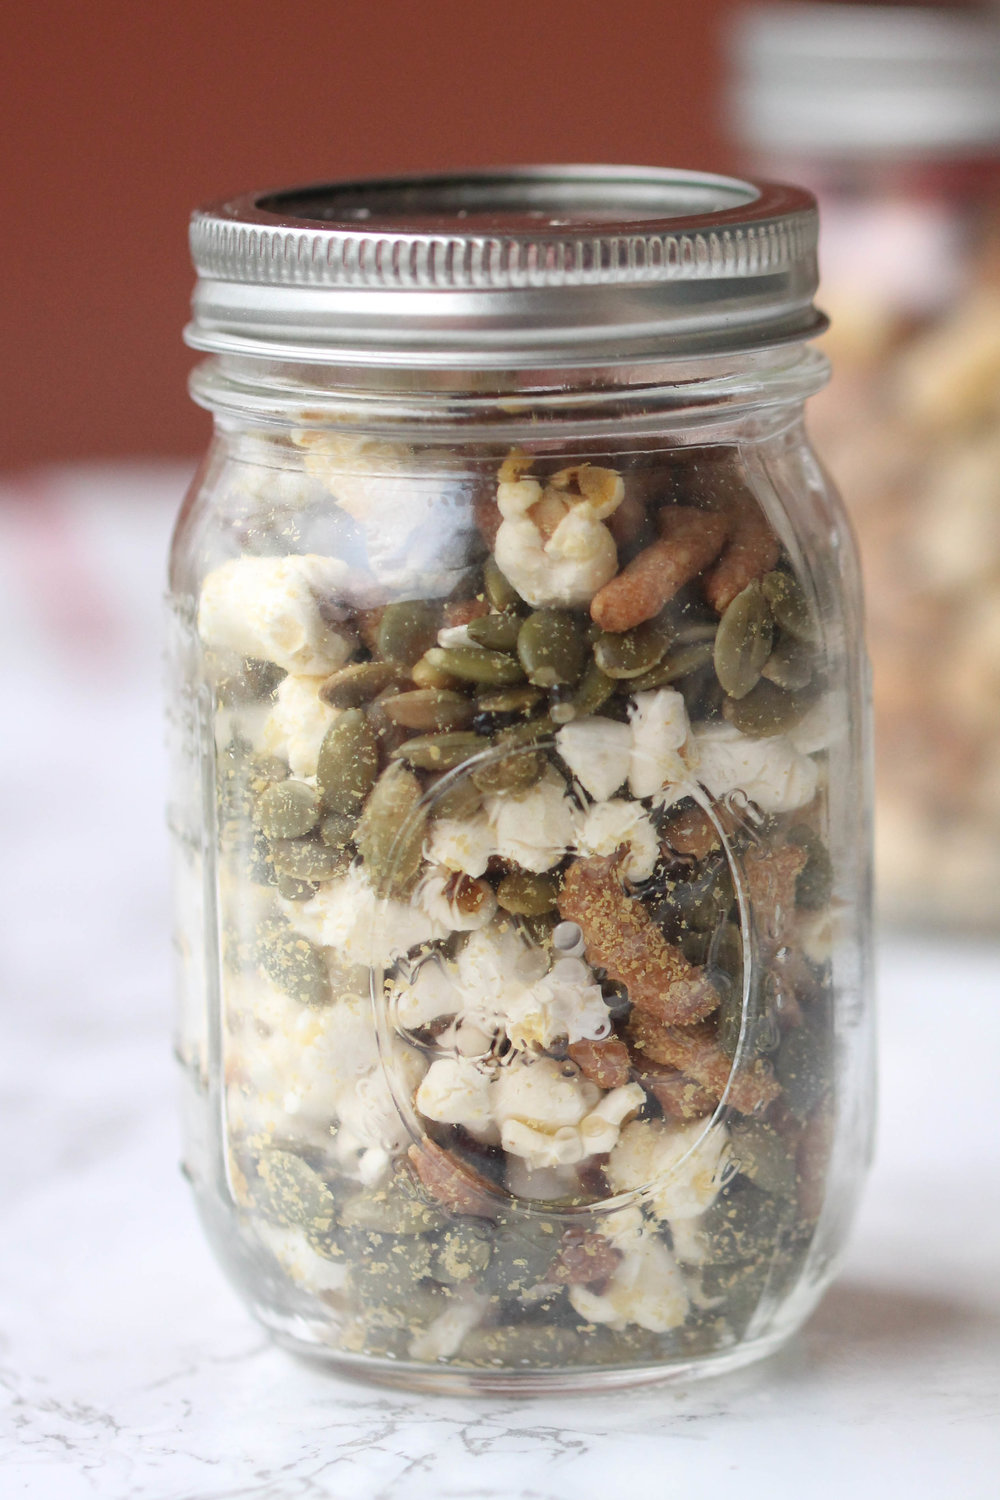 - Savory Trail Mix : pumpkin seeds, popcorn, nutritional yeast, sesame sticks